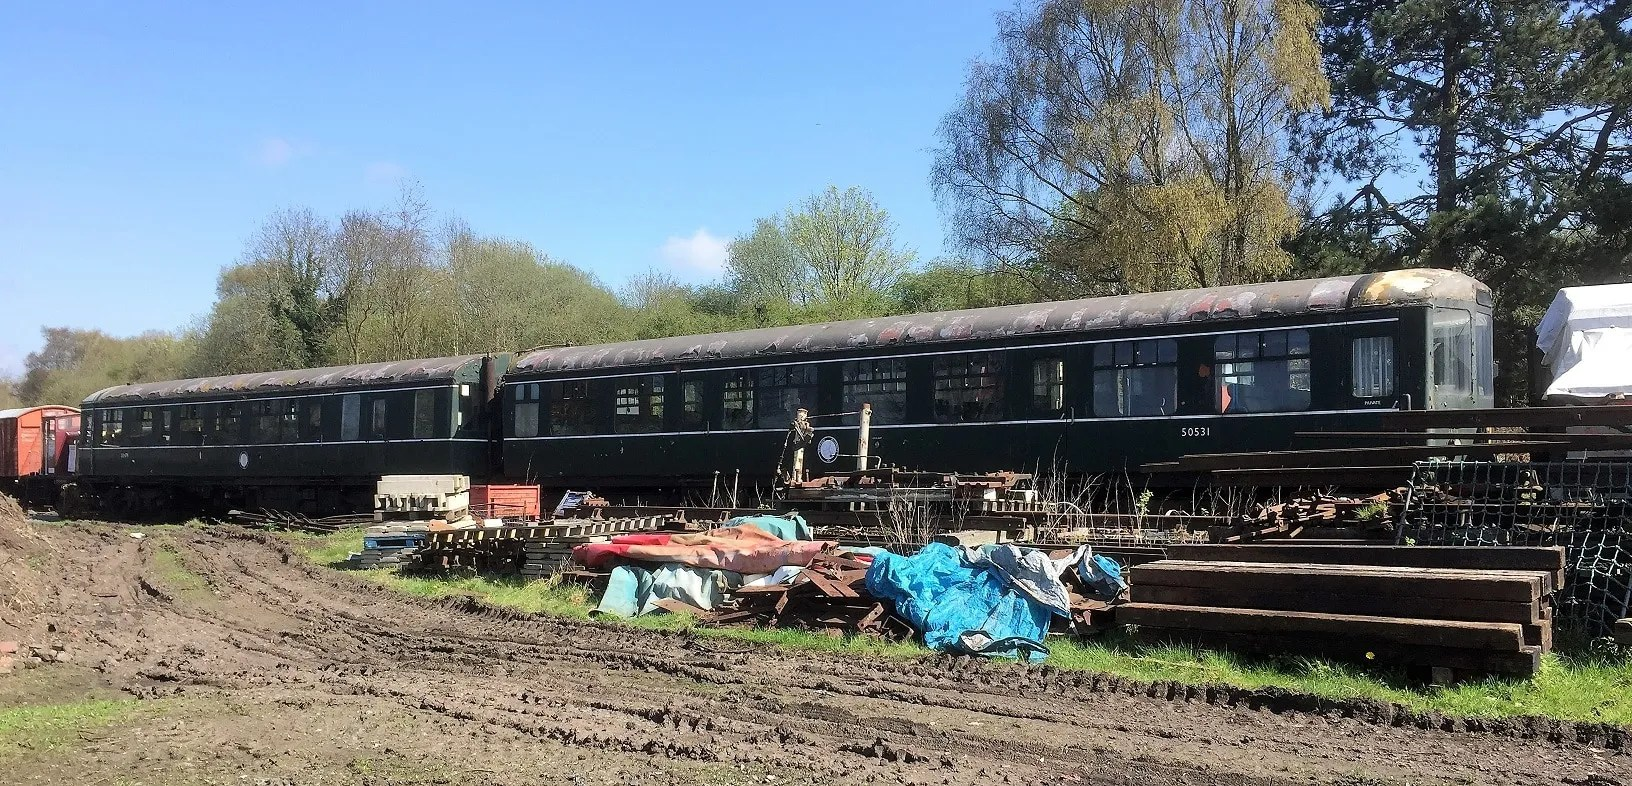 Class 104 DMCL M50531 and DMBS M50479 in yard at Horsehay Telford Steam Railway